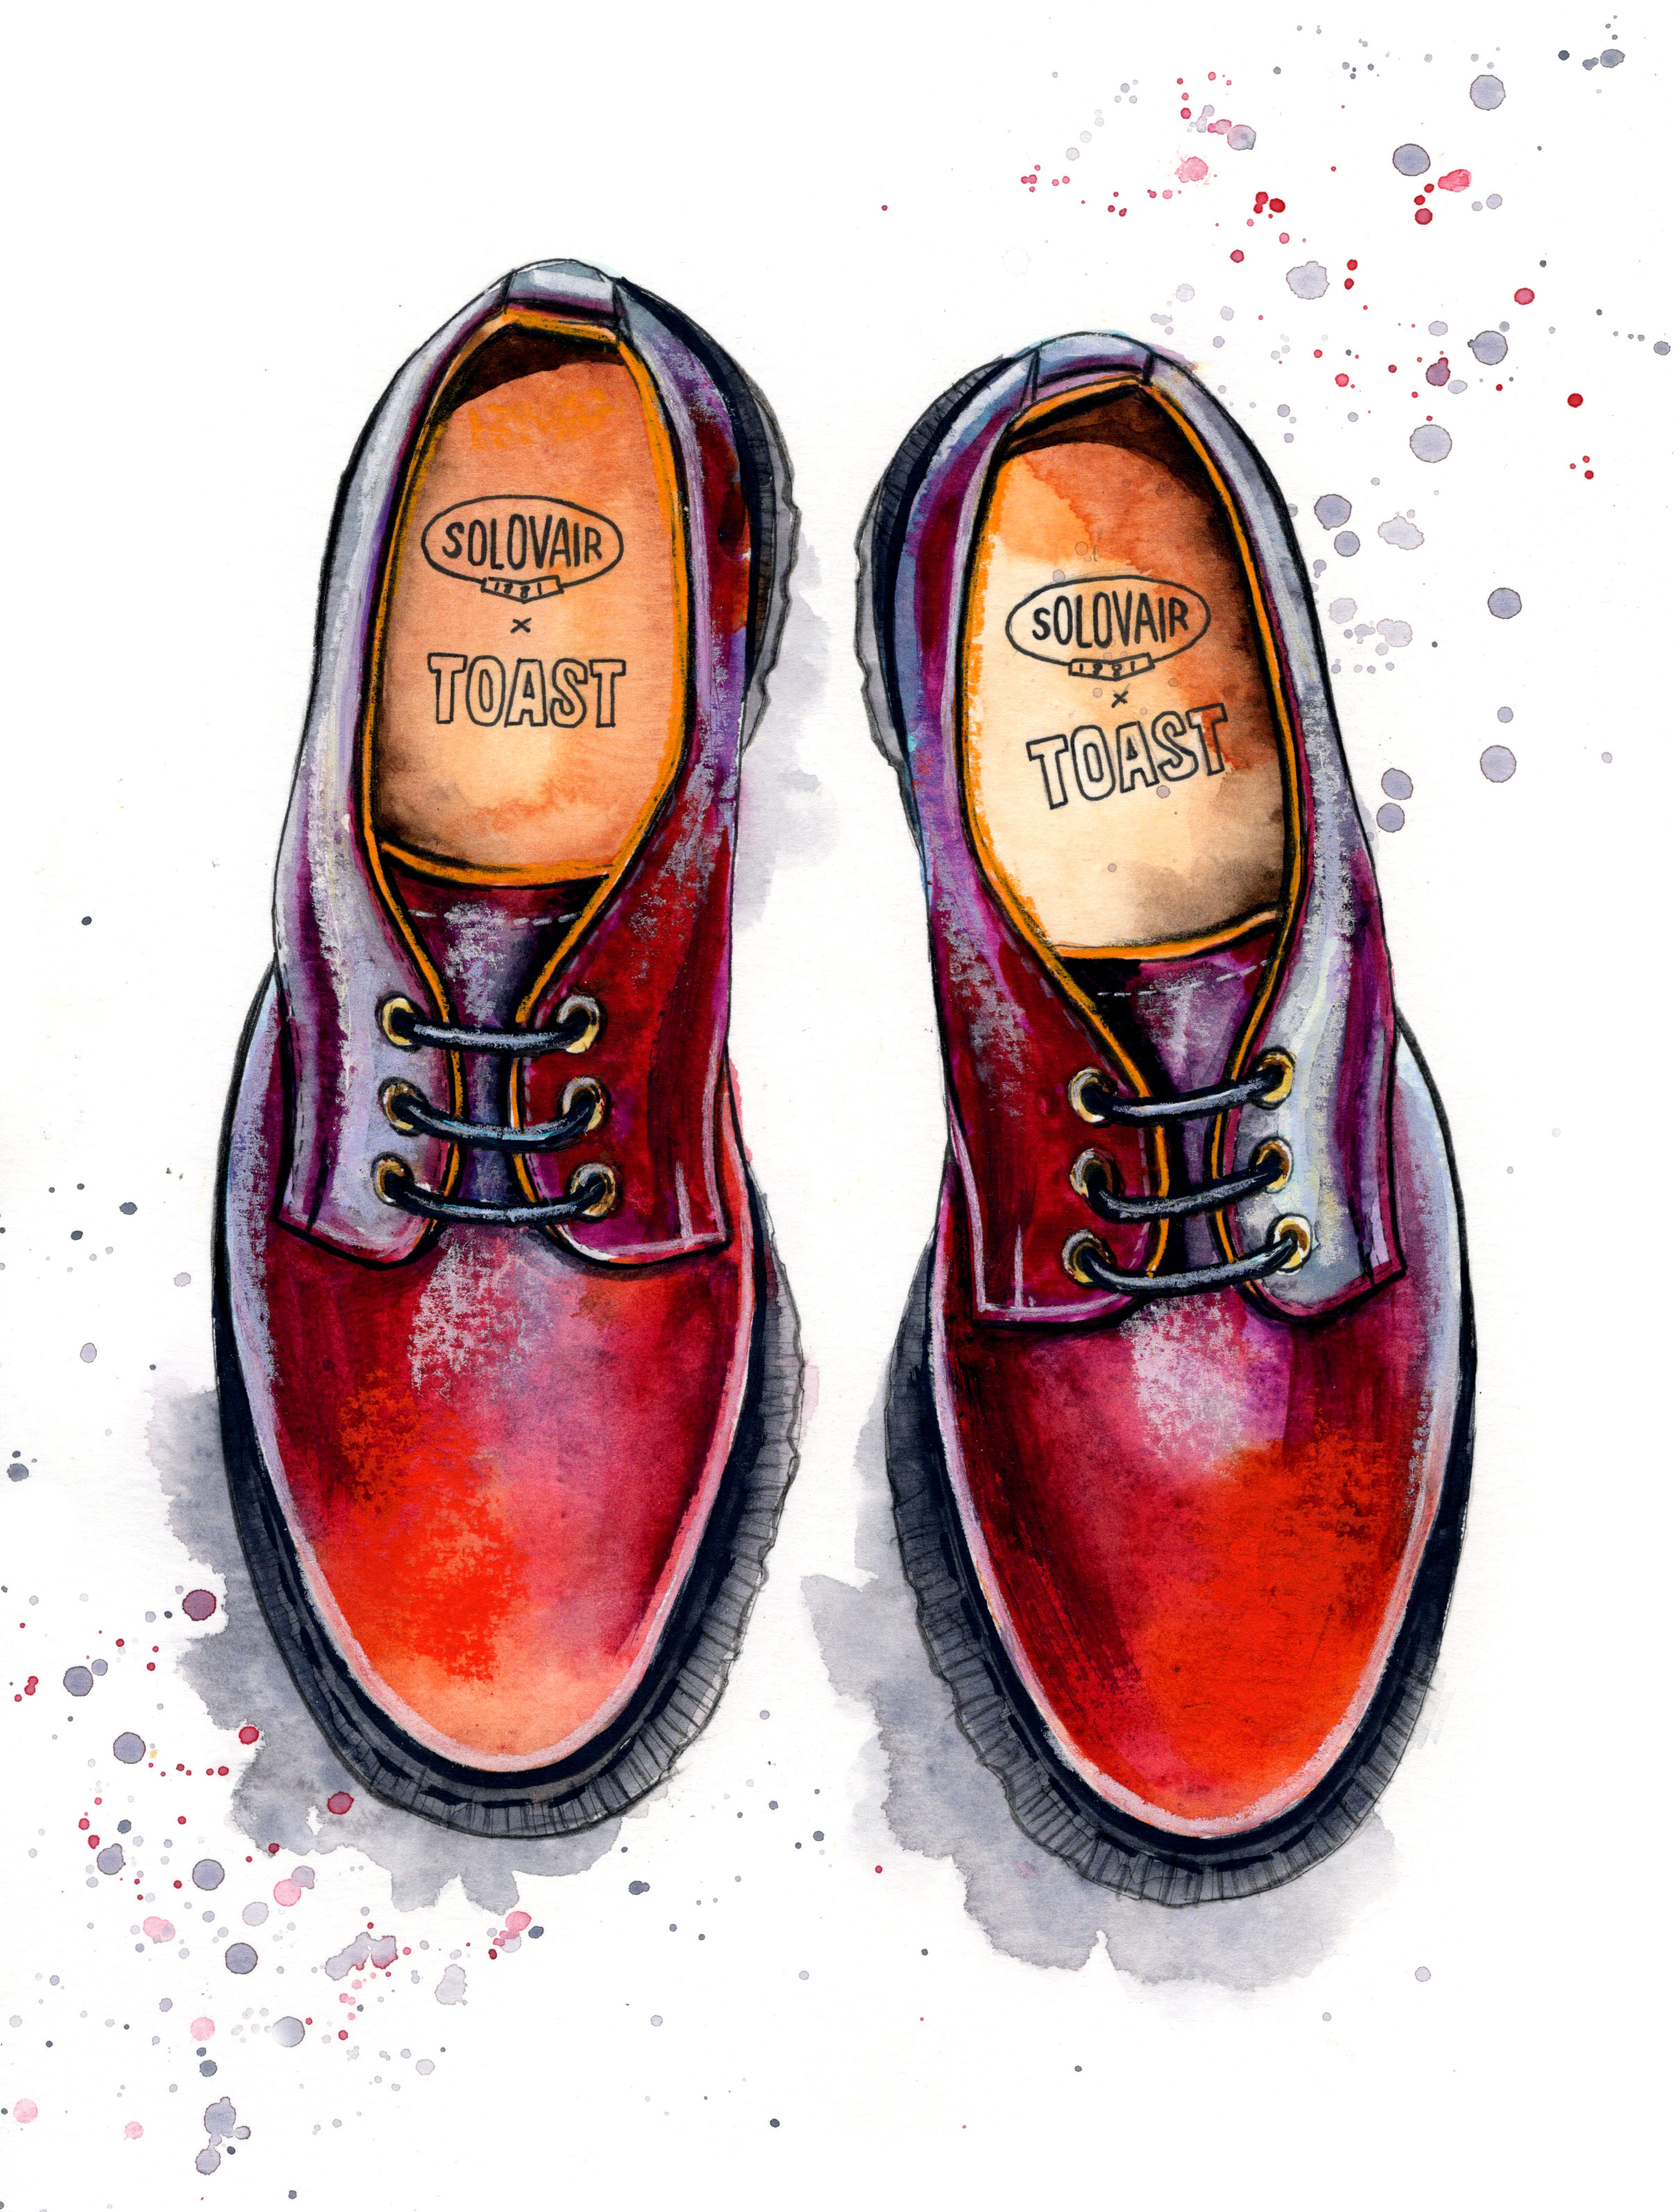 Solovair x TOAST shoes illustration